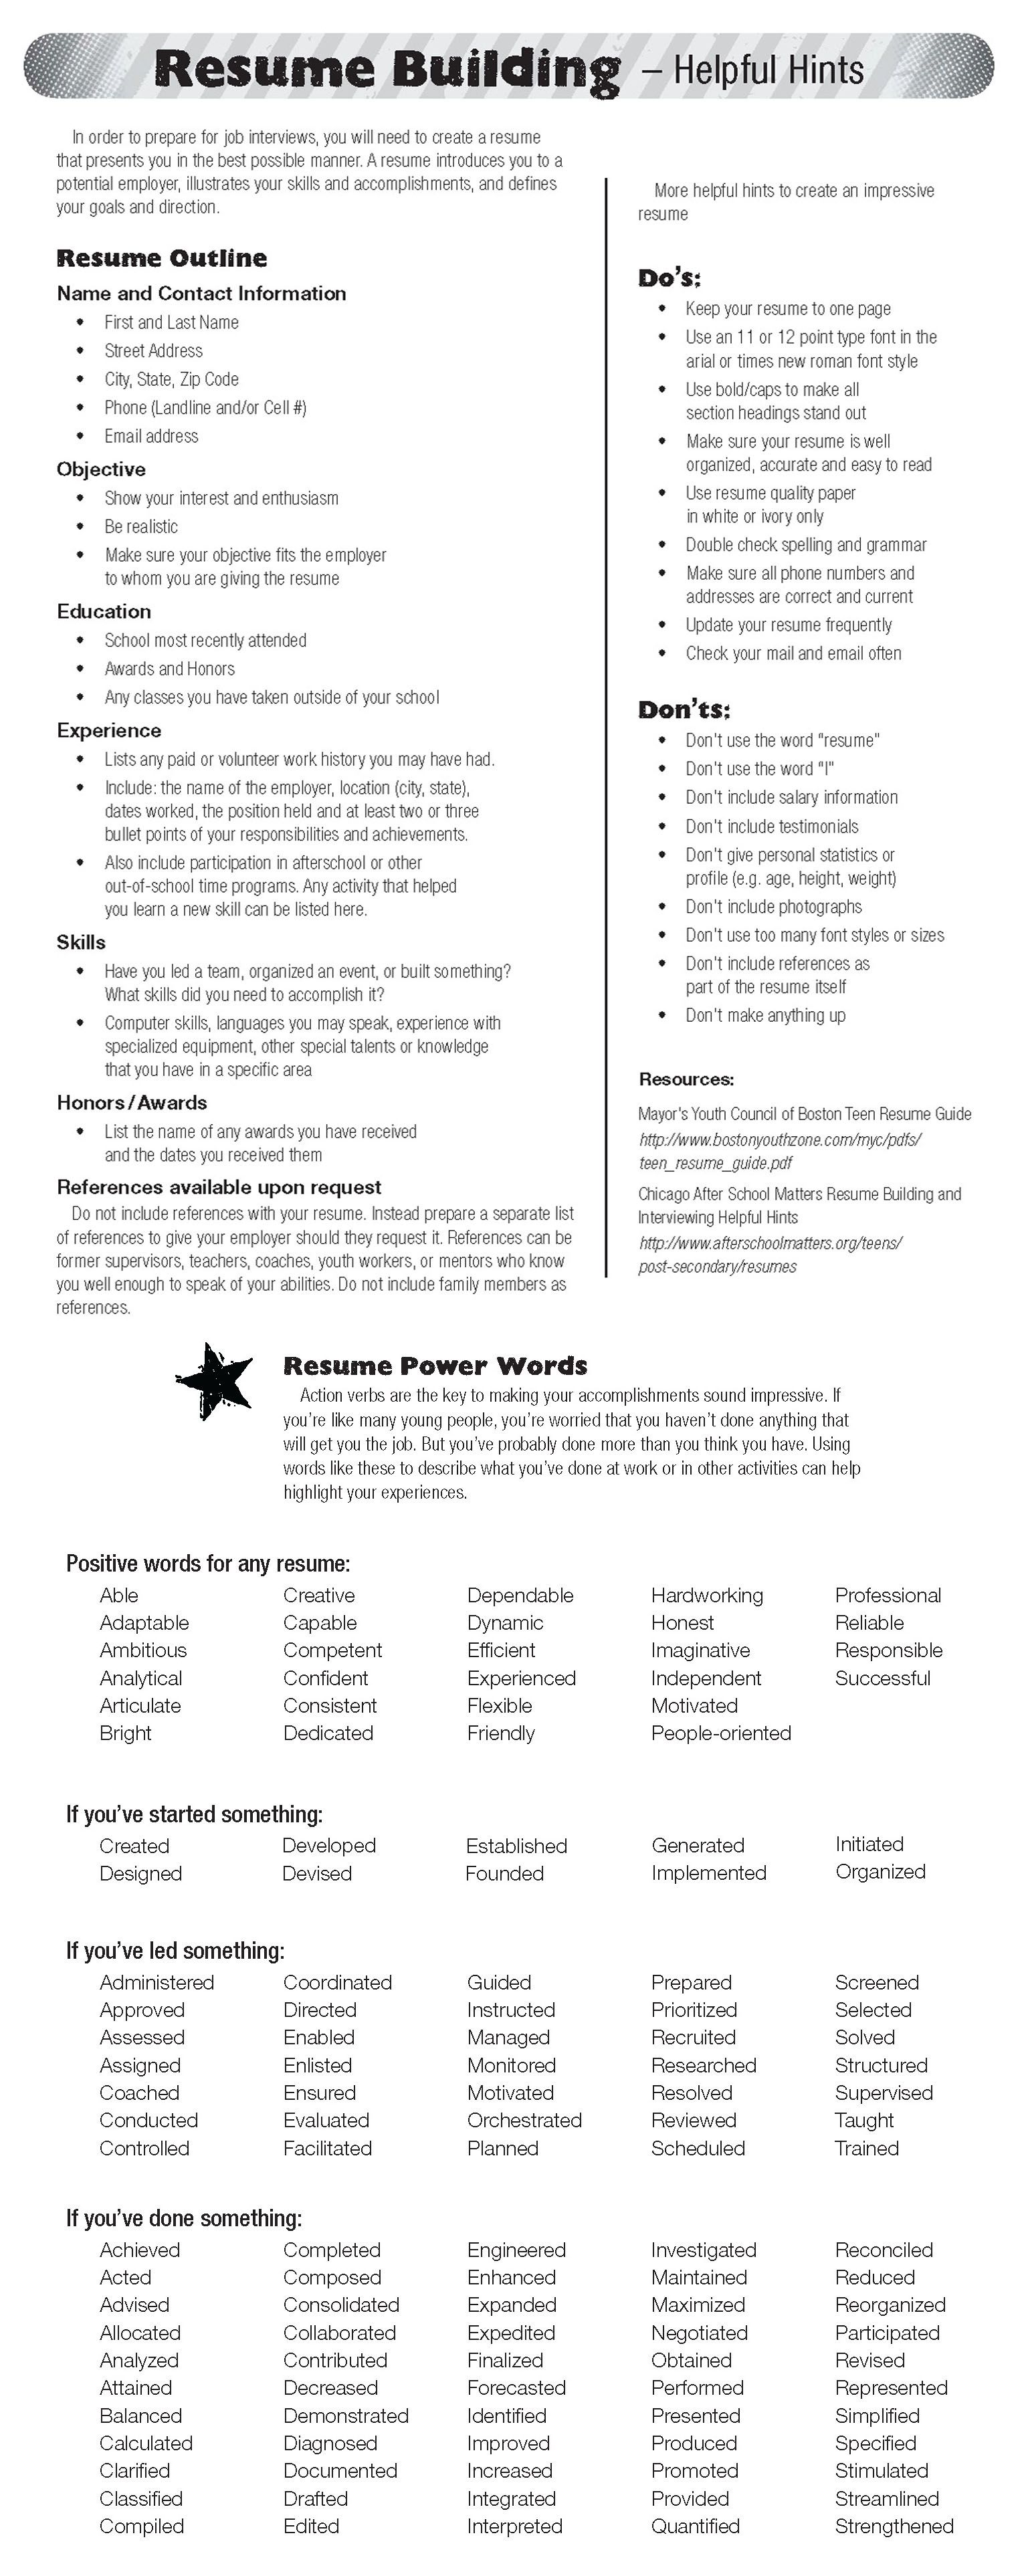 check out today u0026 39 s resume building tips     resume  resumepowerwords